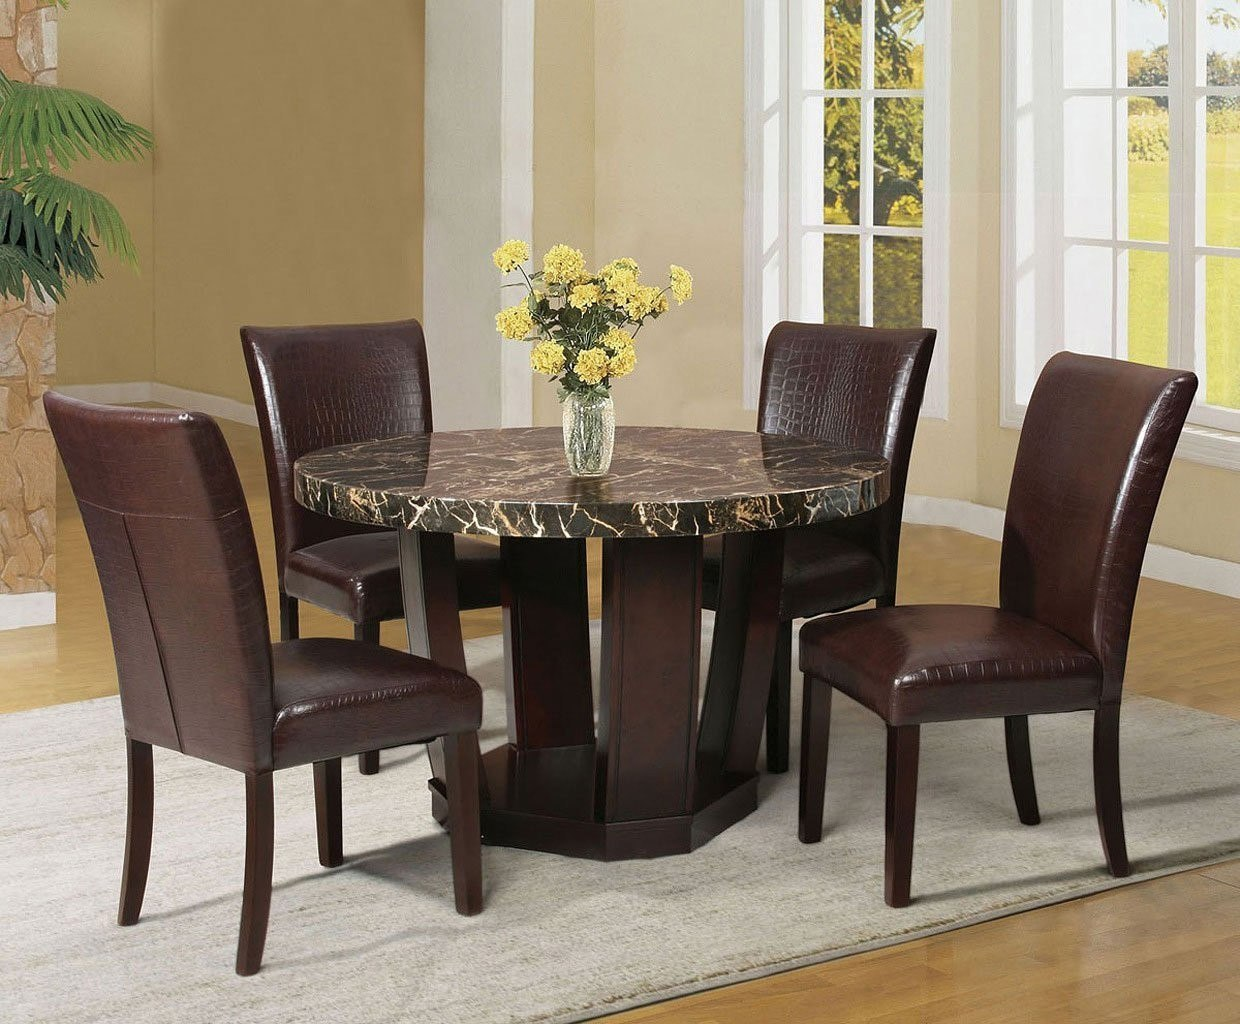 Adolph Round Dining Room Set W/ Fraser Chairs Acme Furniture | Furniture  Cart